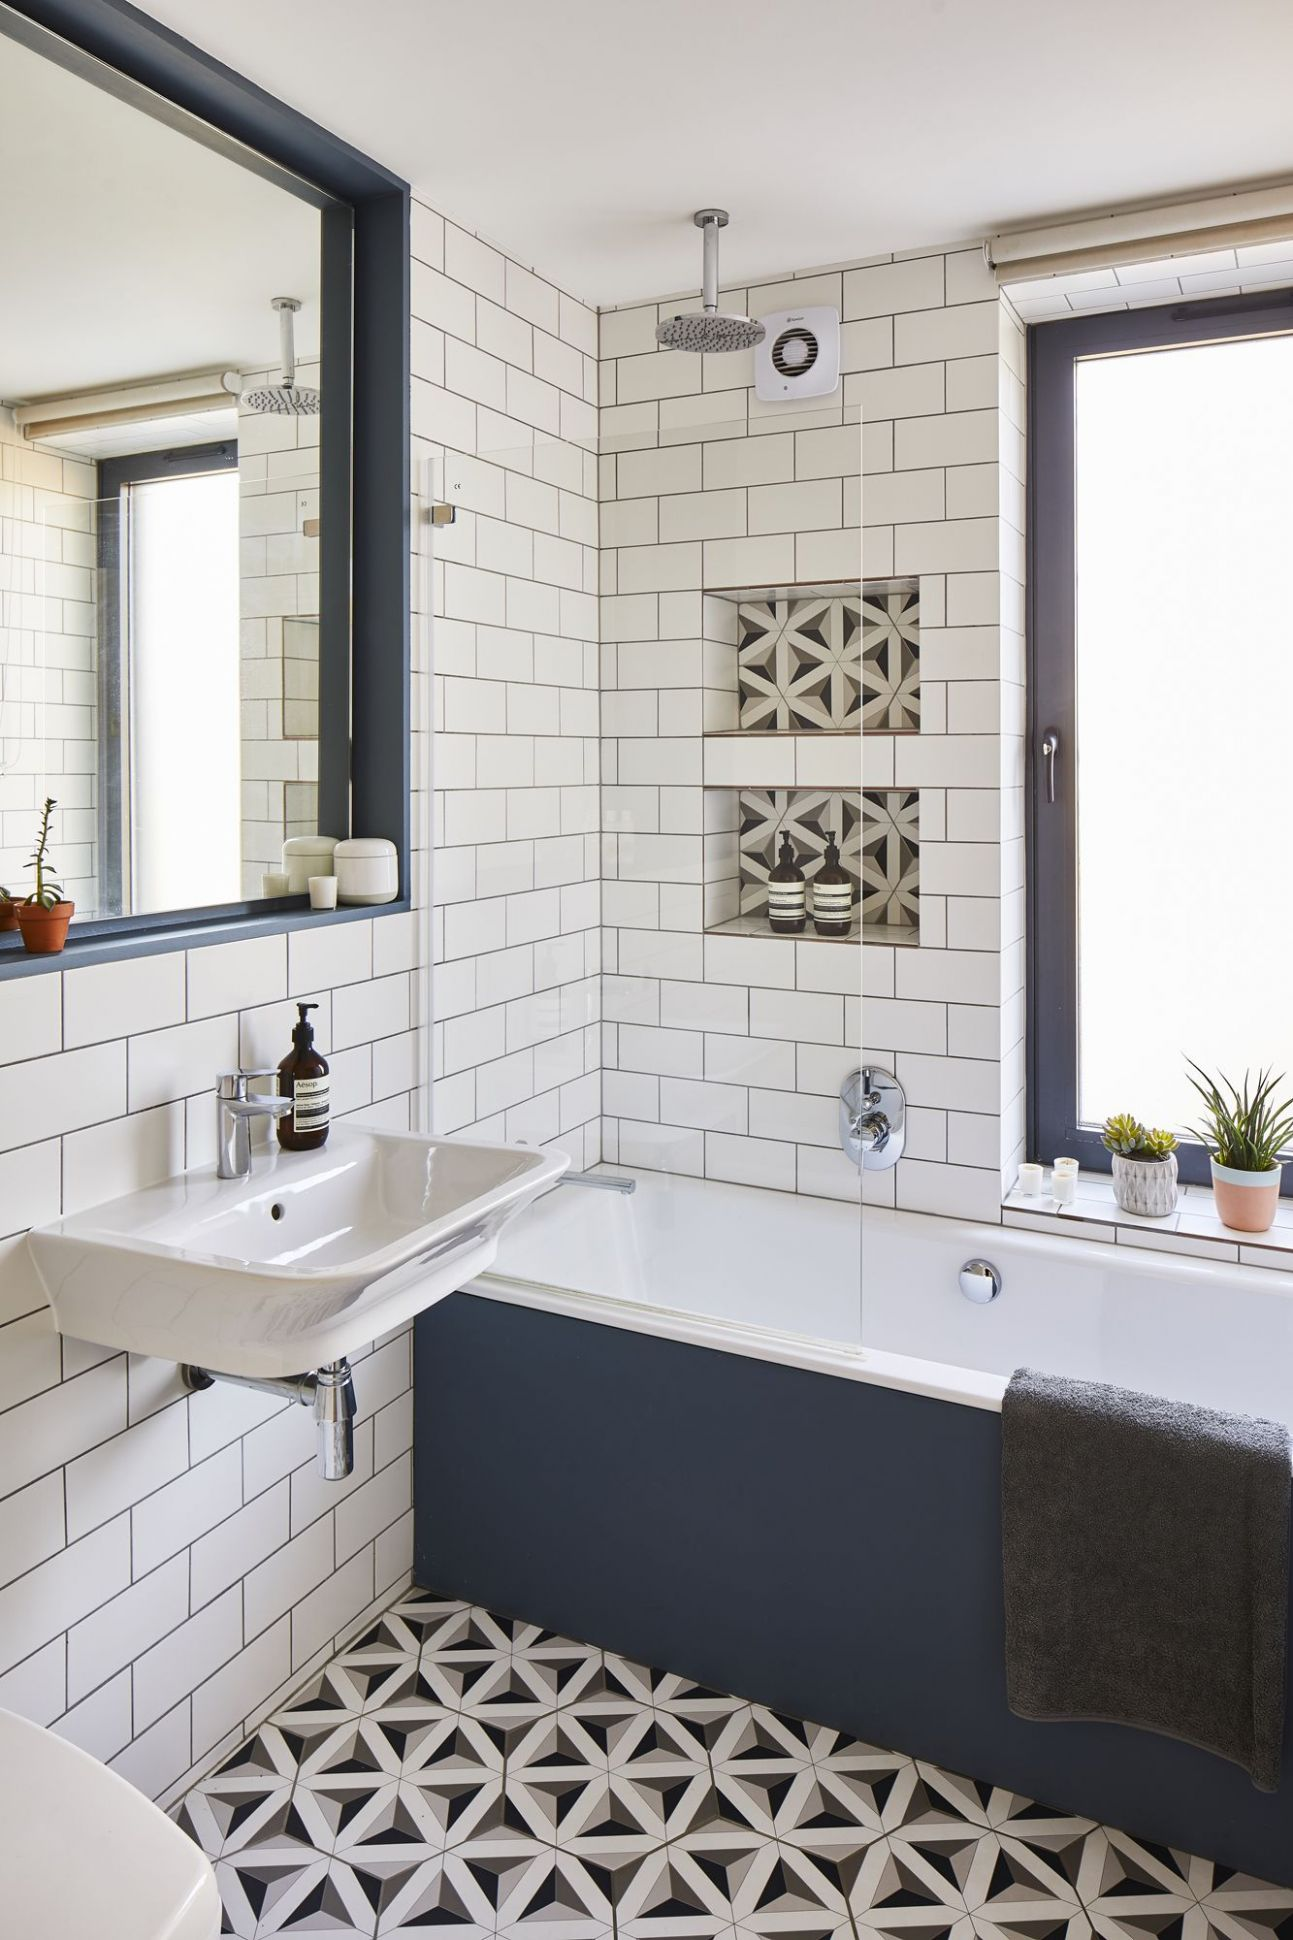 Cheap bathroom ideas: 11 budget-friendly ways to create a stylish ..